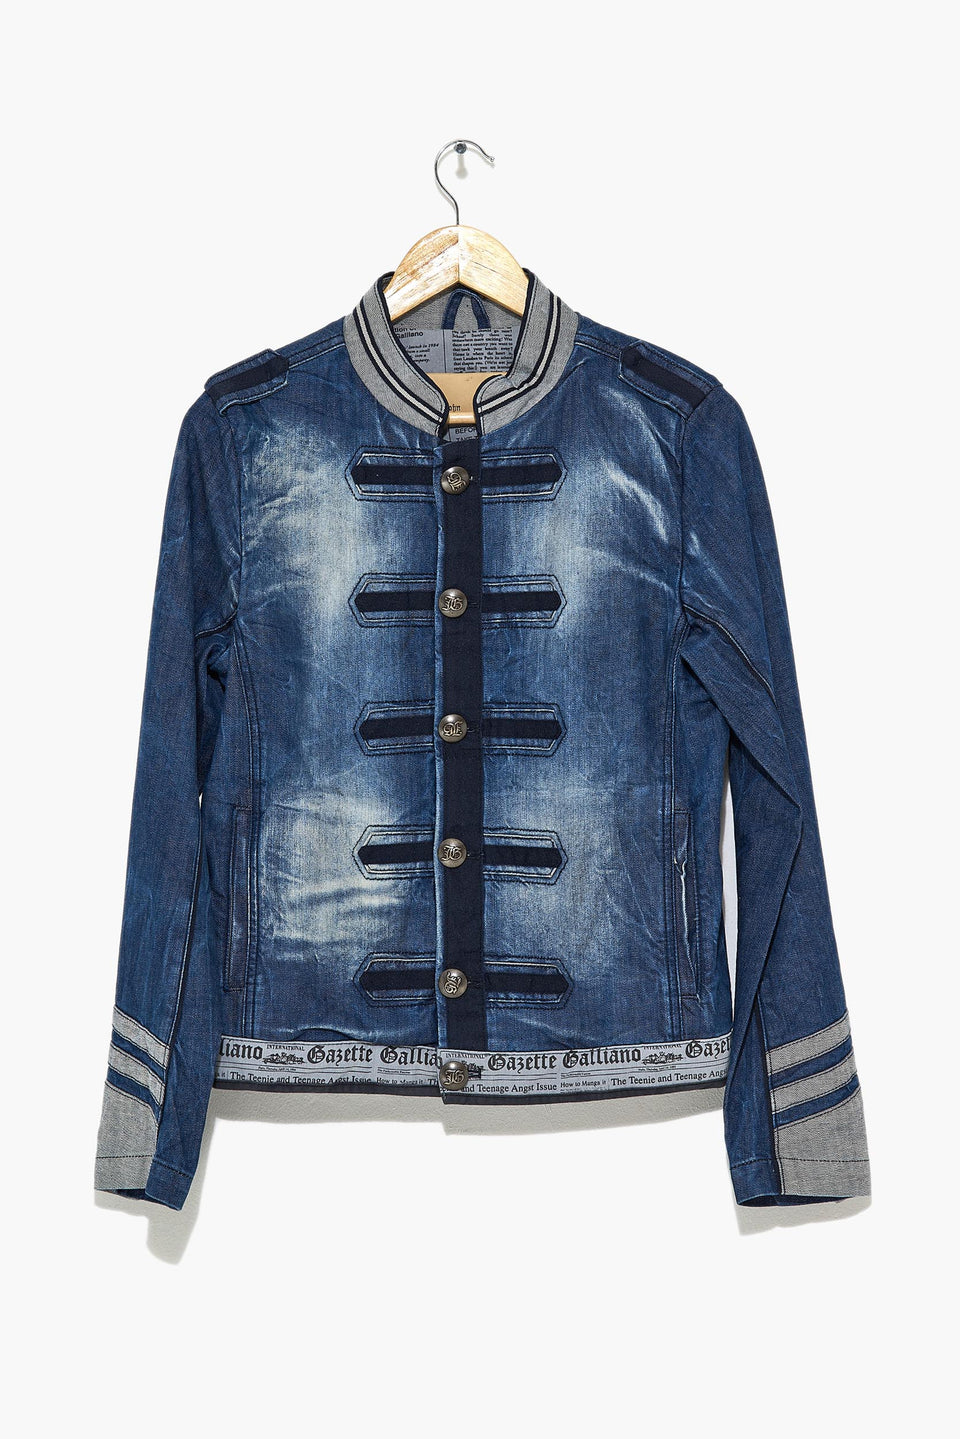 GALLIANO Jeans Jacket